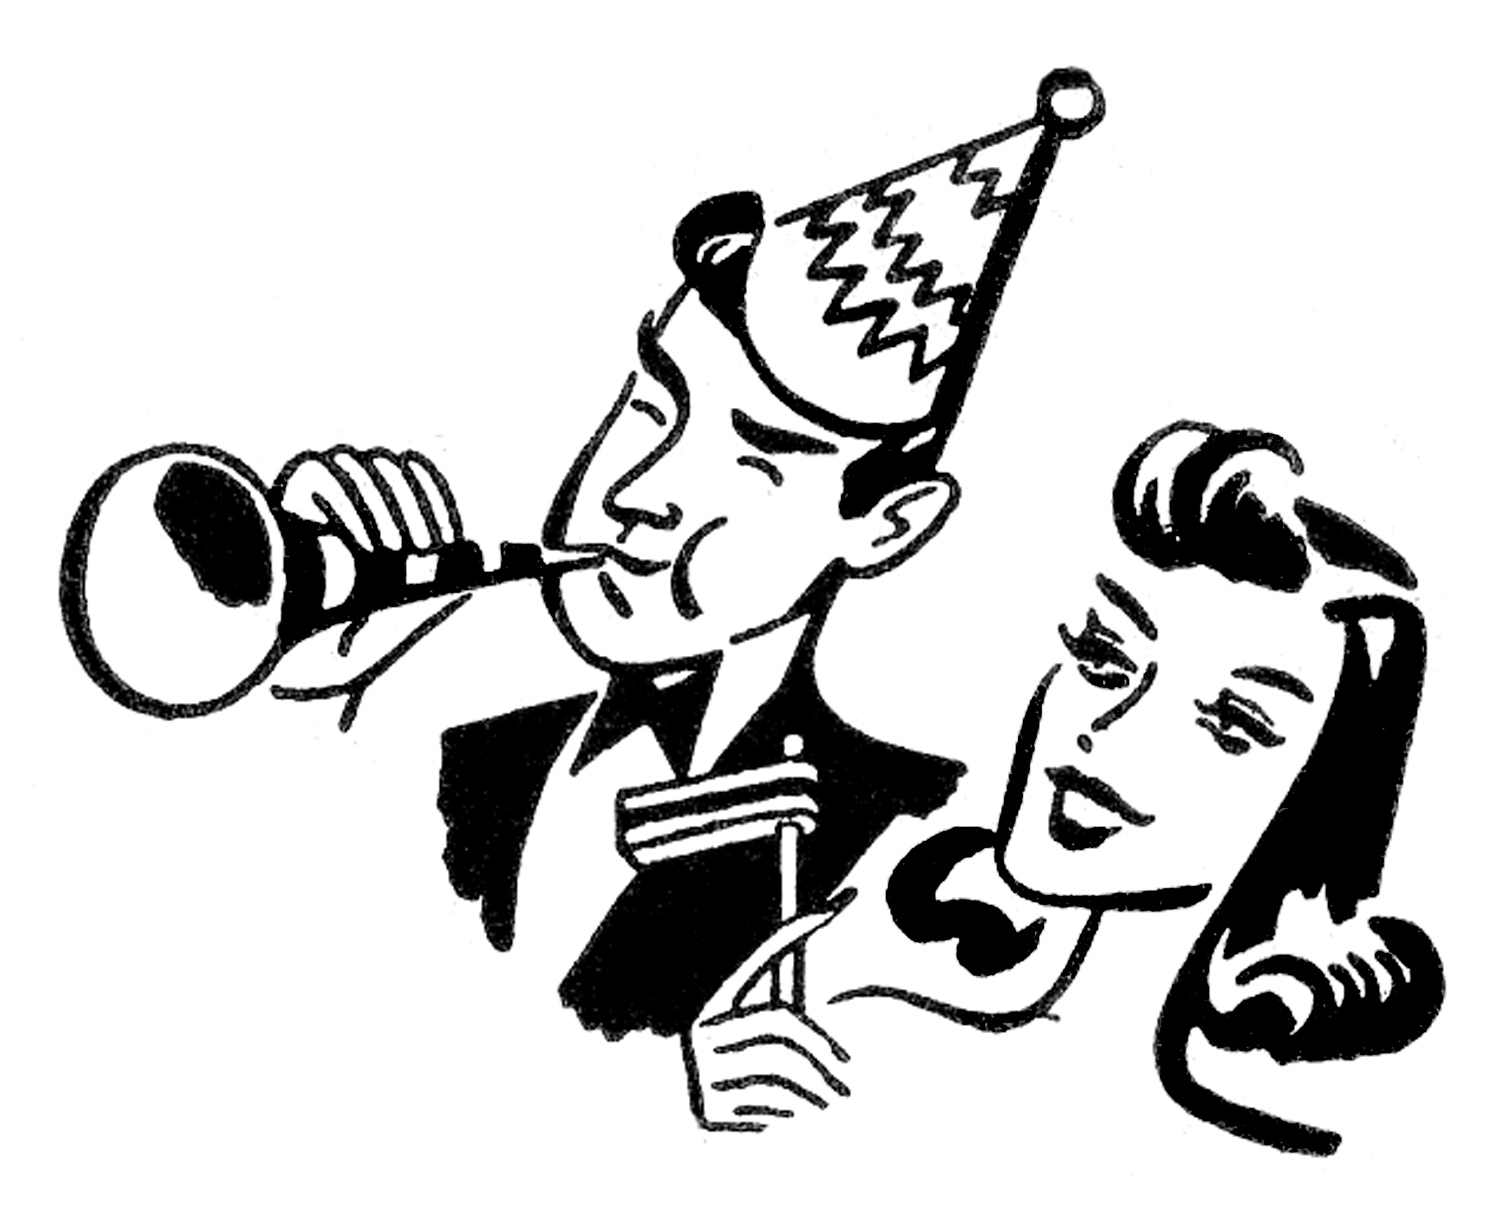 retro new year clipart party man woman